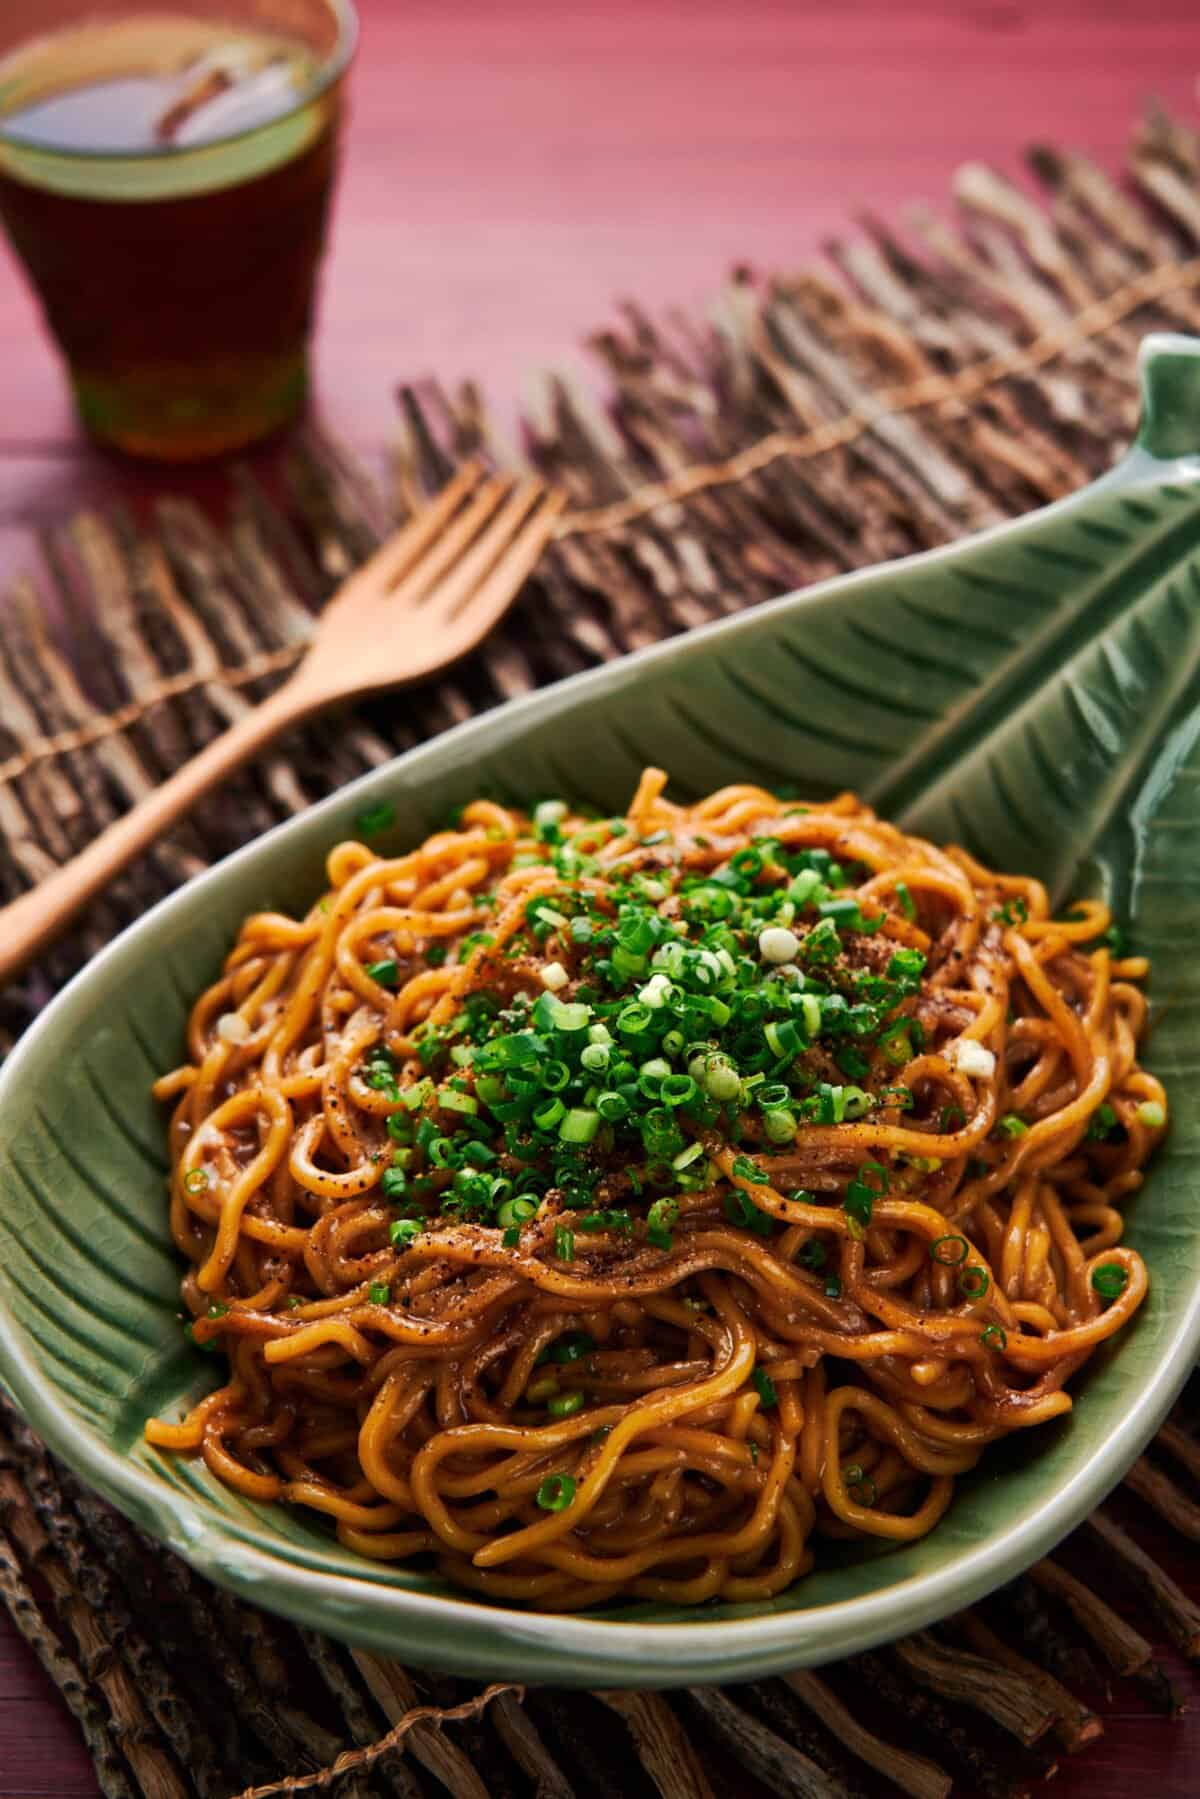 With a trifecta of fresh garlic, caramelized garlic, and black garlic, this easy garlic noodle recipe is mind-blowingly good.